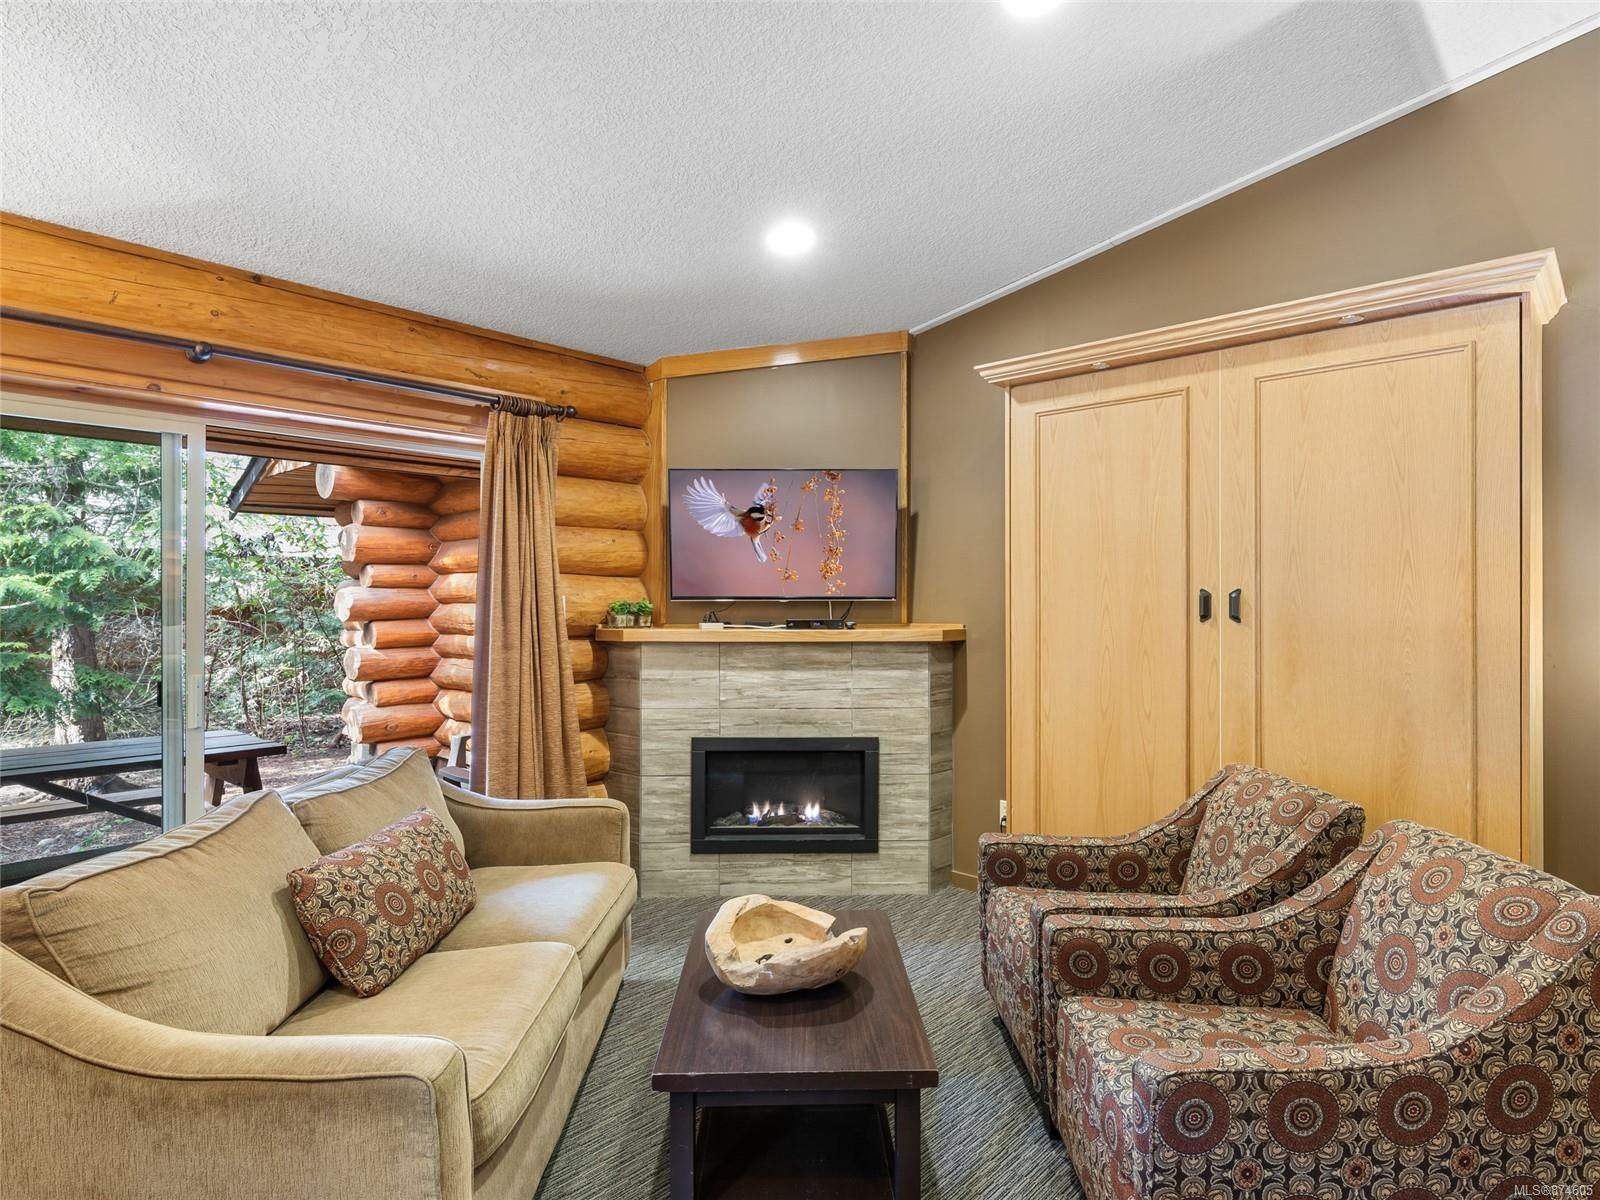 Main Photo: 508 1155 Resort Dr in : PQ Parksville Row/Townhouse for sale (Parksville/Qualicum)  : MLS®# 874605